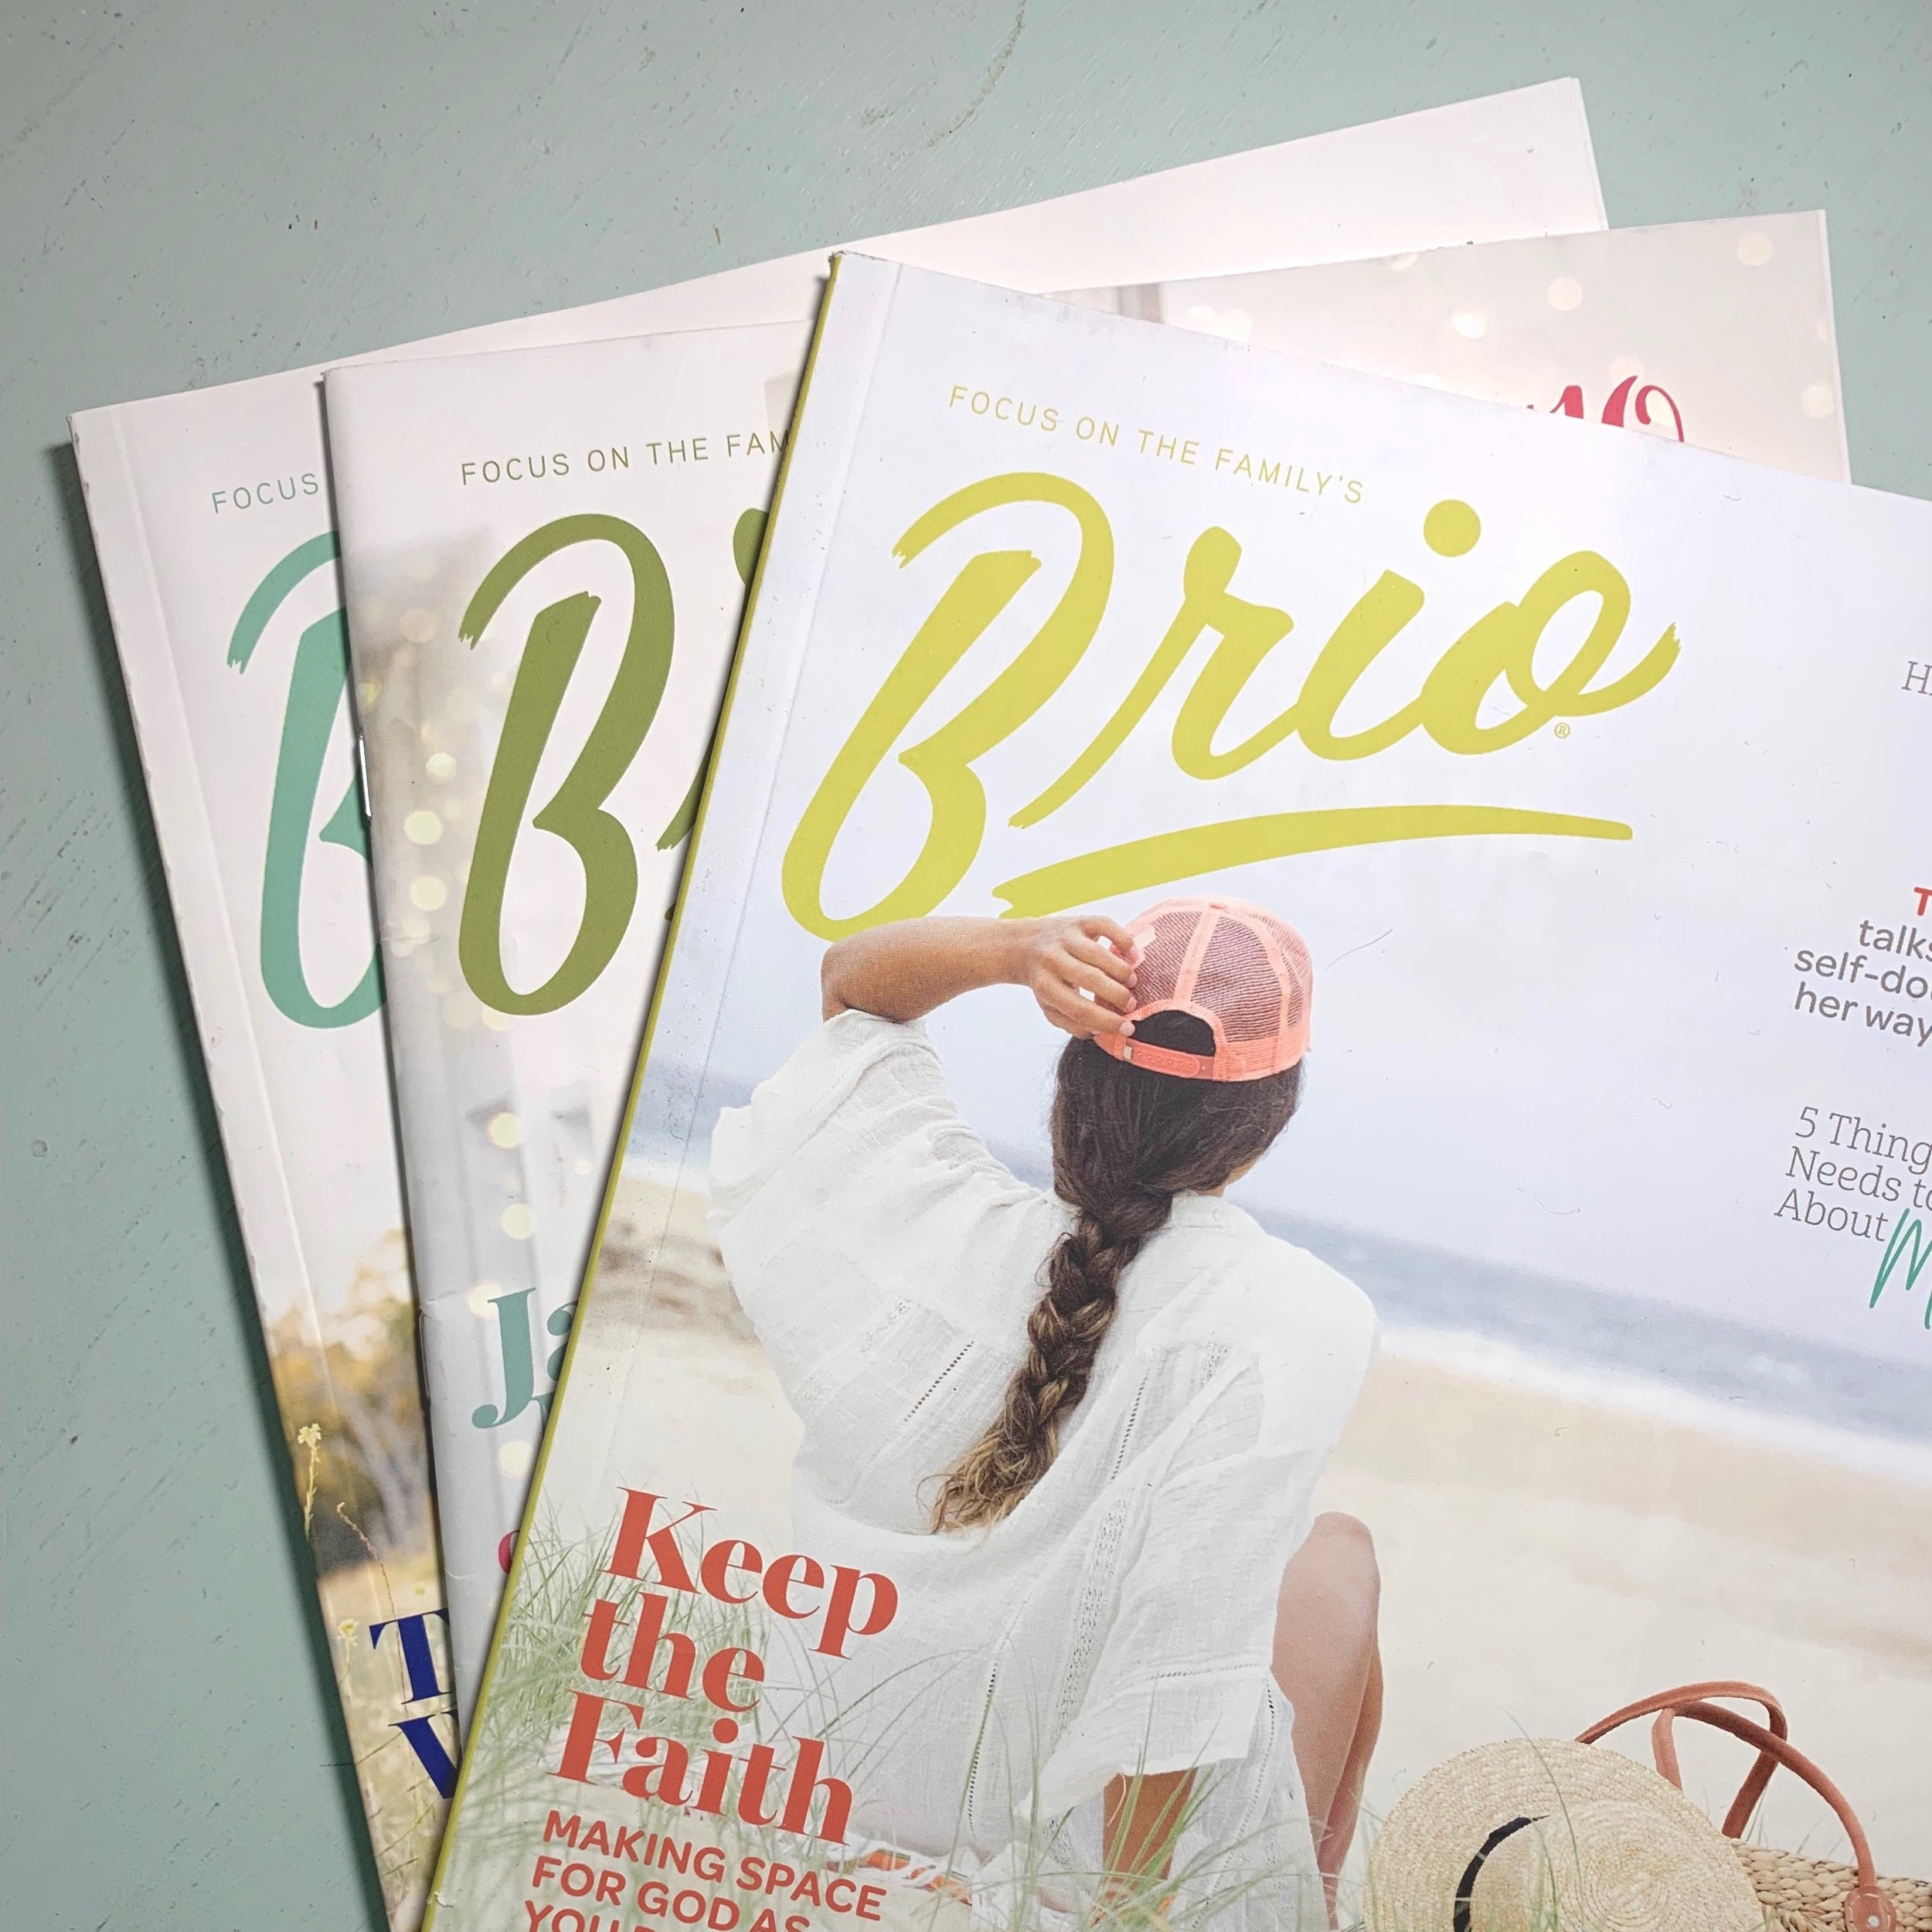 Brio Magazine   We're here to help you grow in your faith, encourage healthy relationships and address real-life topics that will help you navigate the teen years. Growing into womanhood is a great adventure and the  Brio  team wants to journey with you. Let's talk culture, body image, social media, boys and more as we filter it all through our shared faith in Jesus Christ.  for more information check out  https://www.focusonthefamily.com/parenting/brio-magazine/   (description from Focus on the Family website)